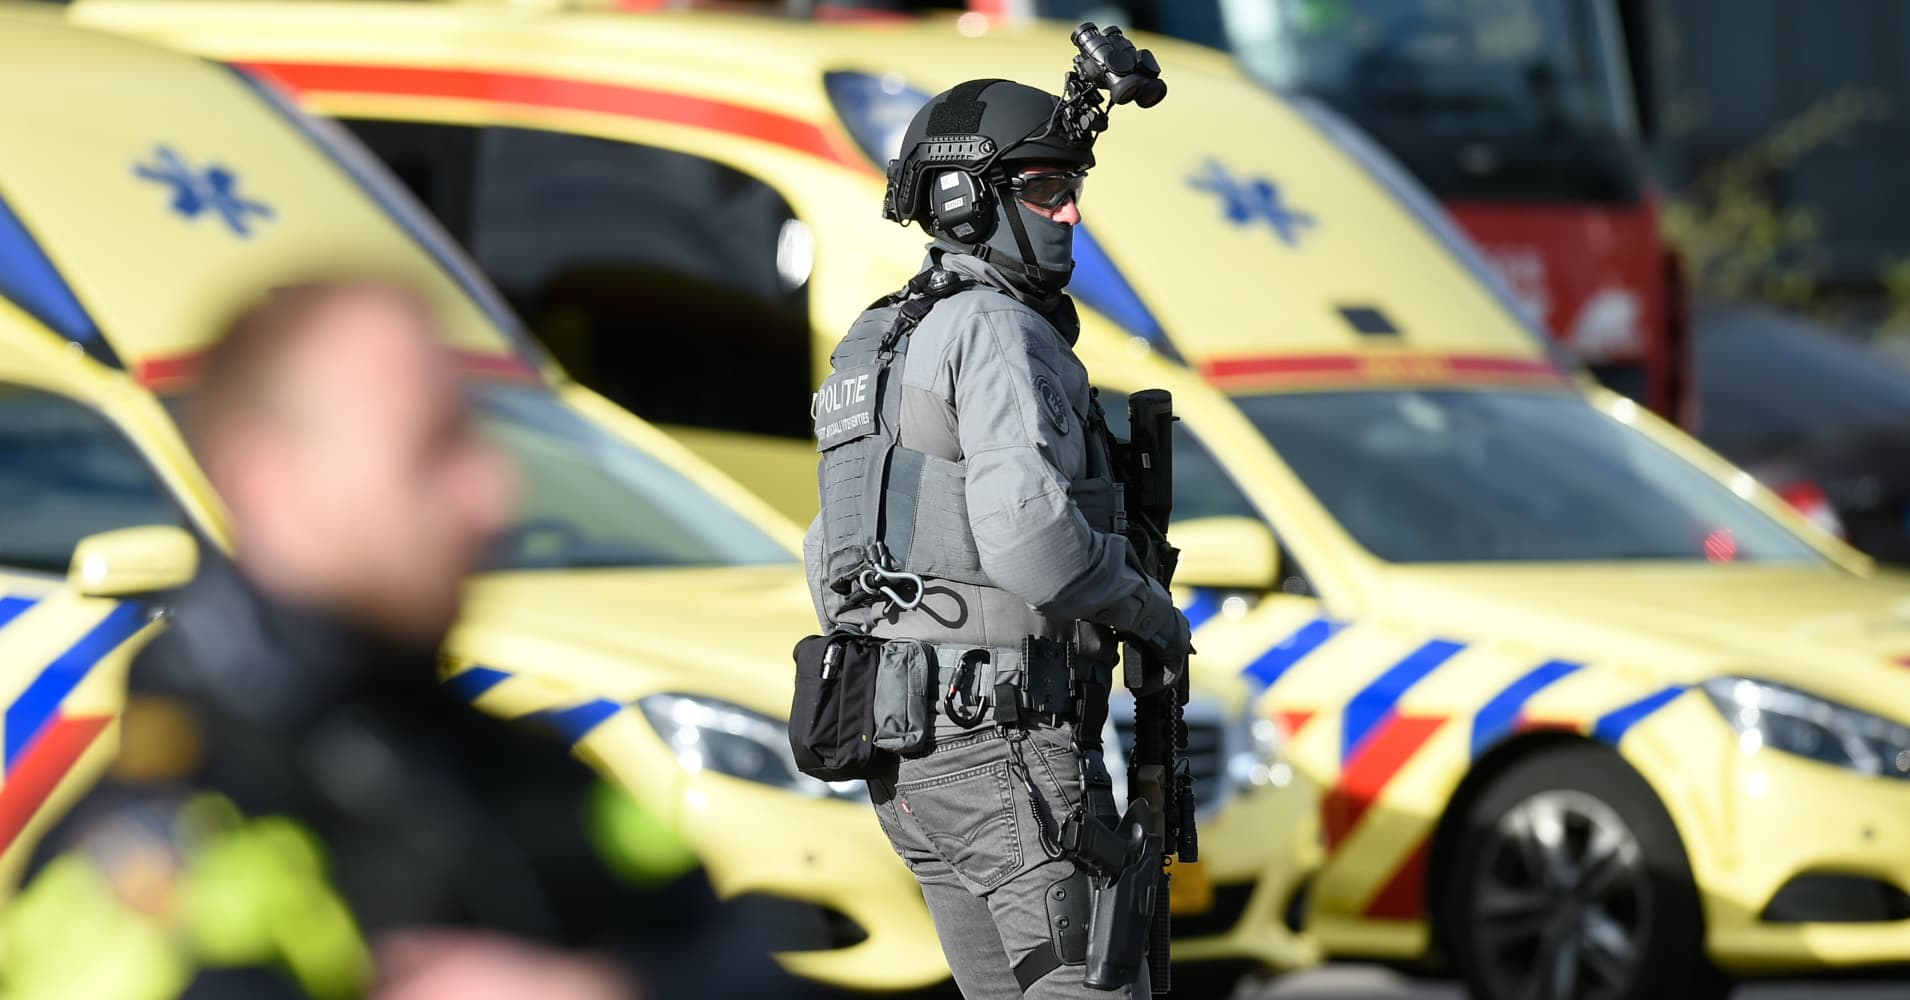 Suspect arrested in shooting that leaves at least 3 dead in Dutch city of Utrecht